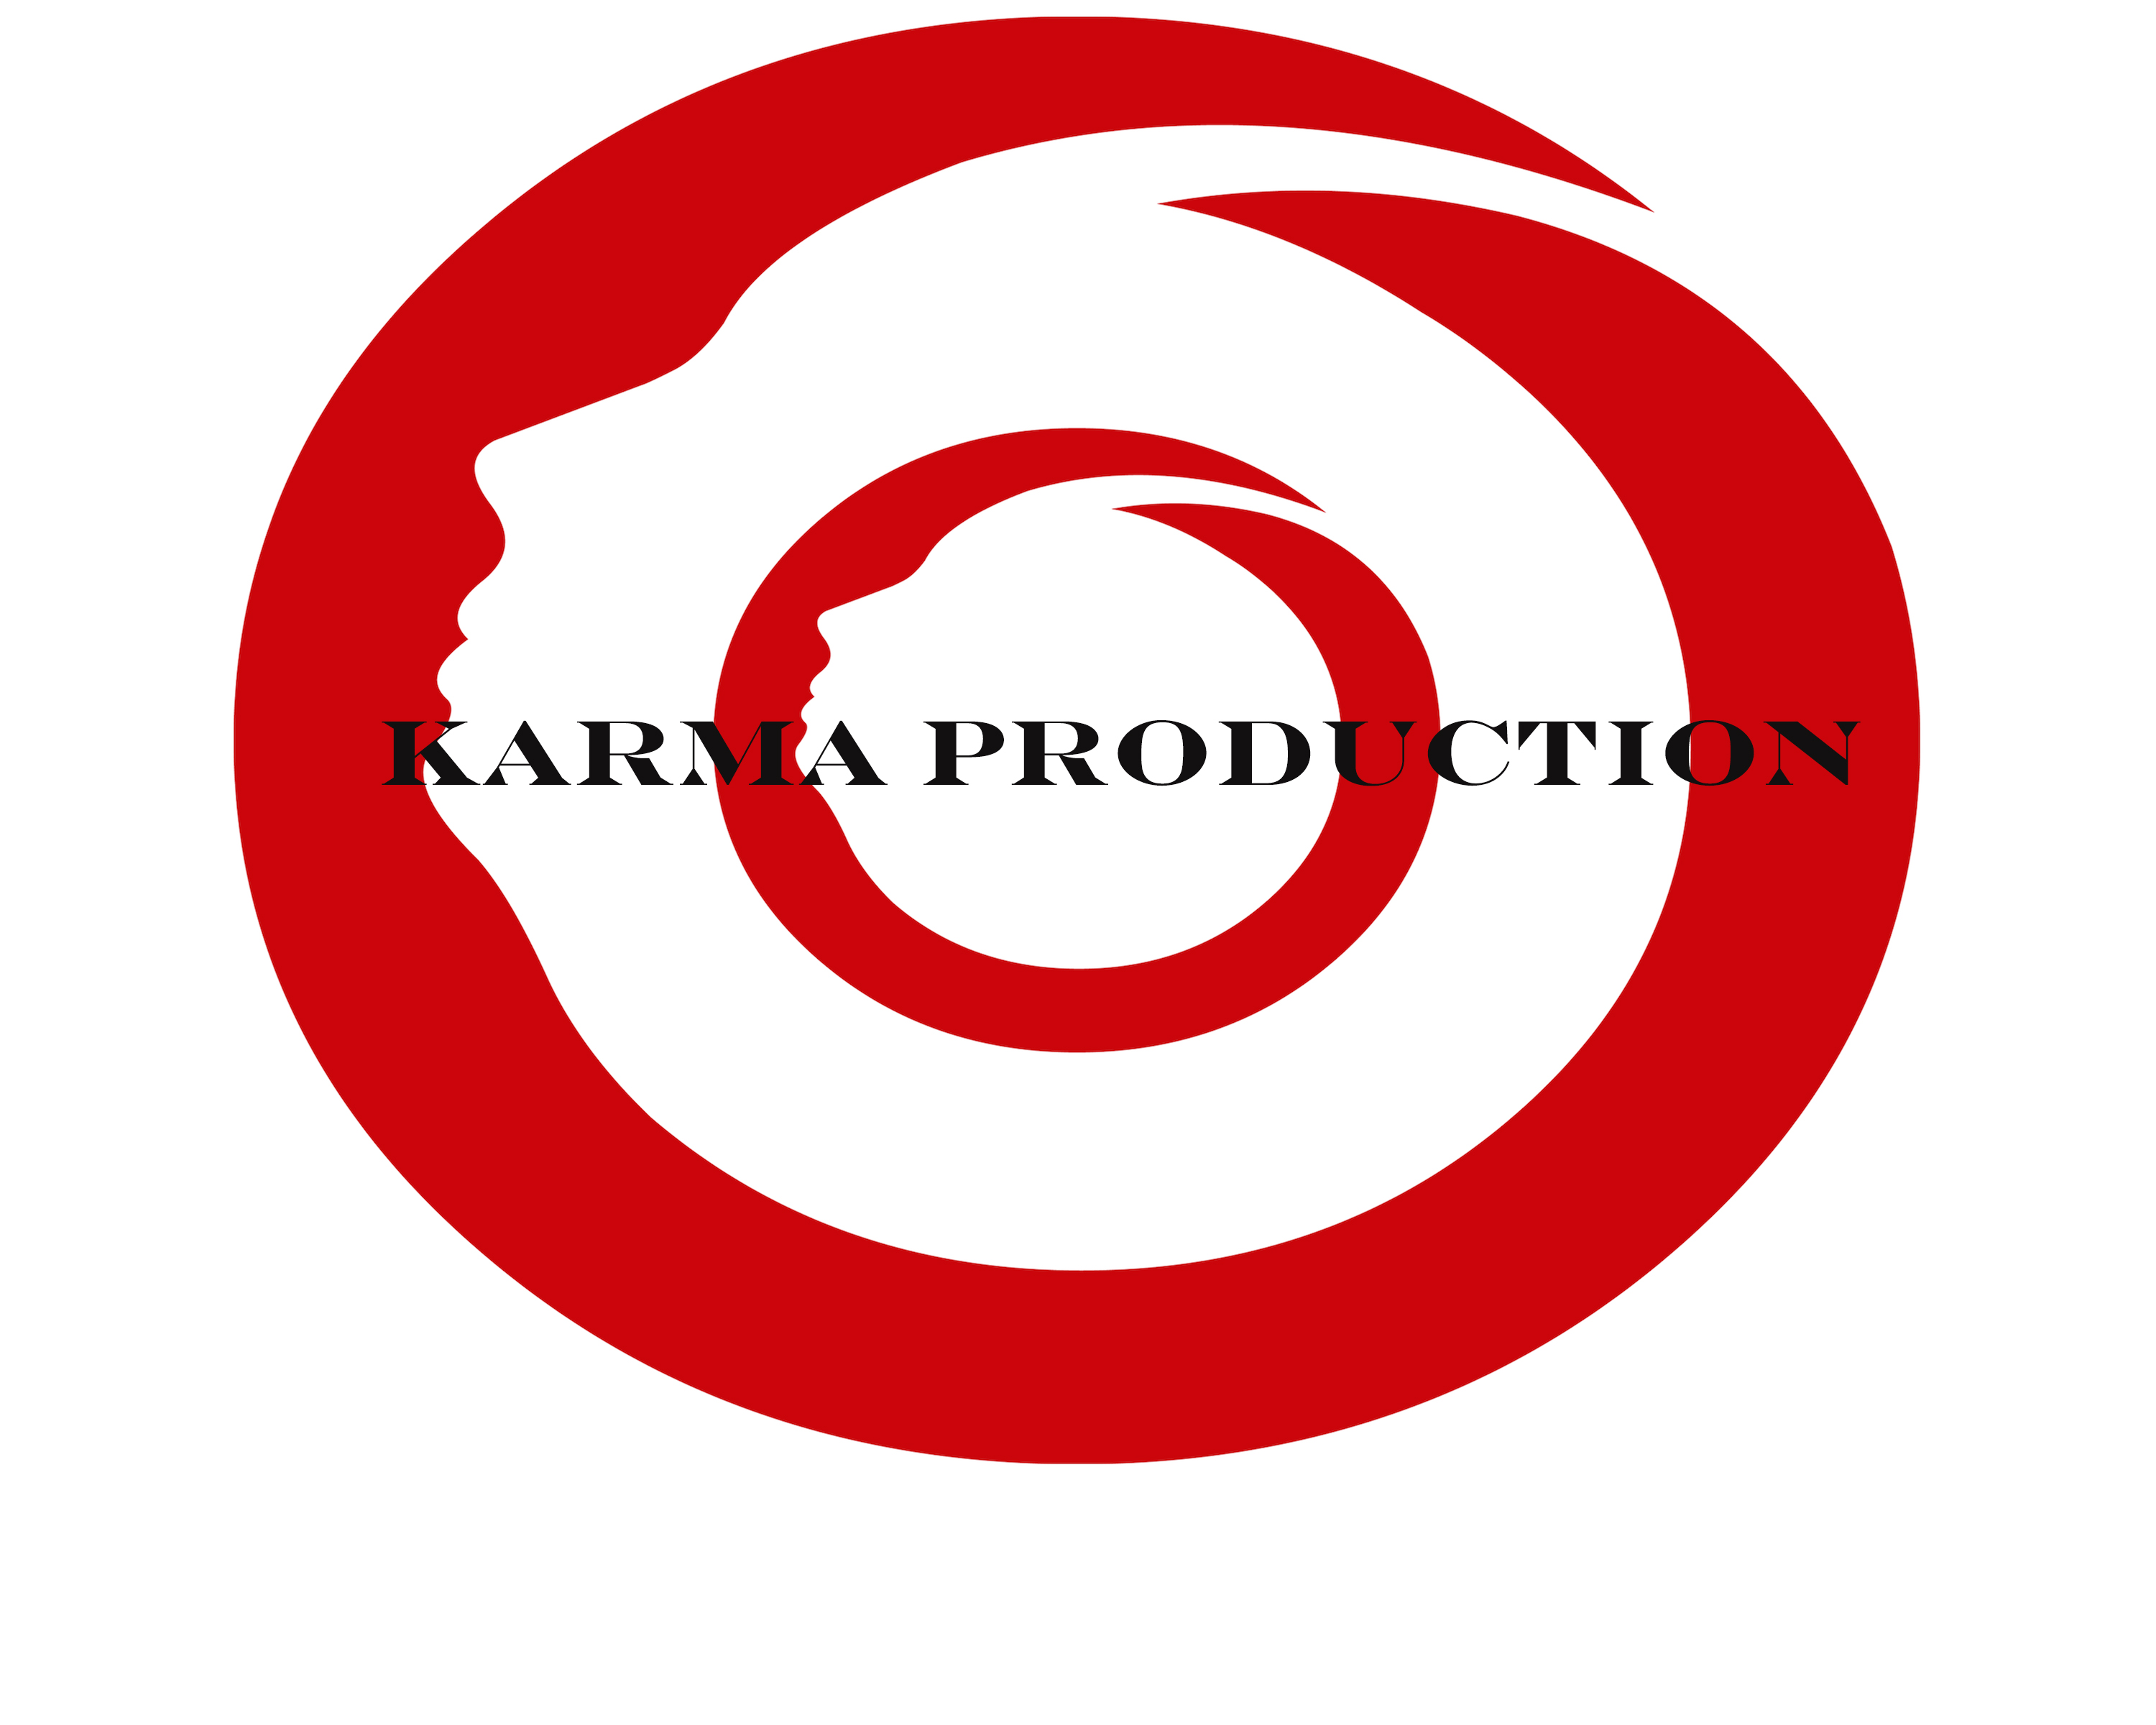 Karma Productions